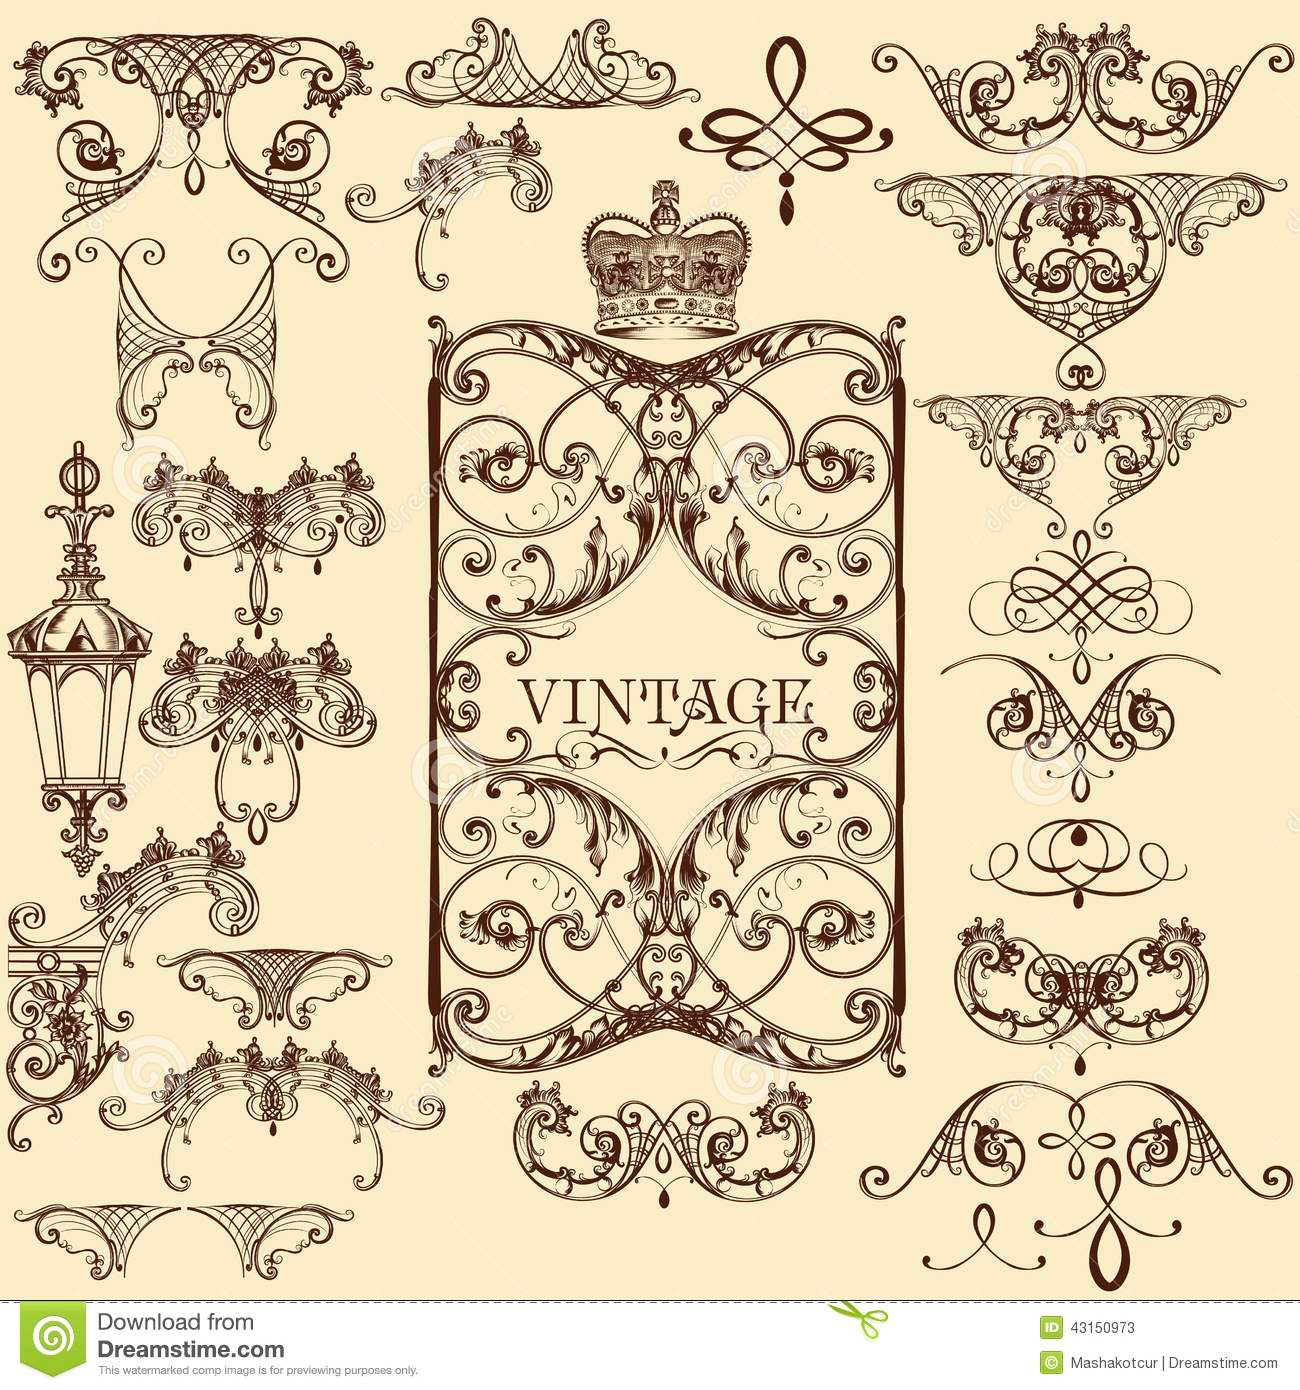 Ornaments and Flourishes - Download Free Vector Art, Stock ...